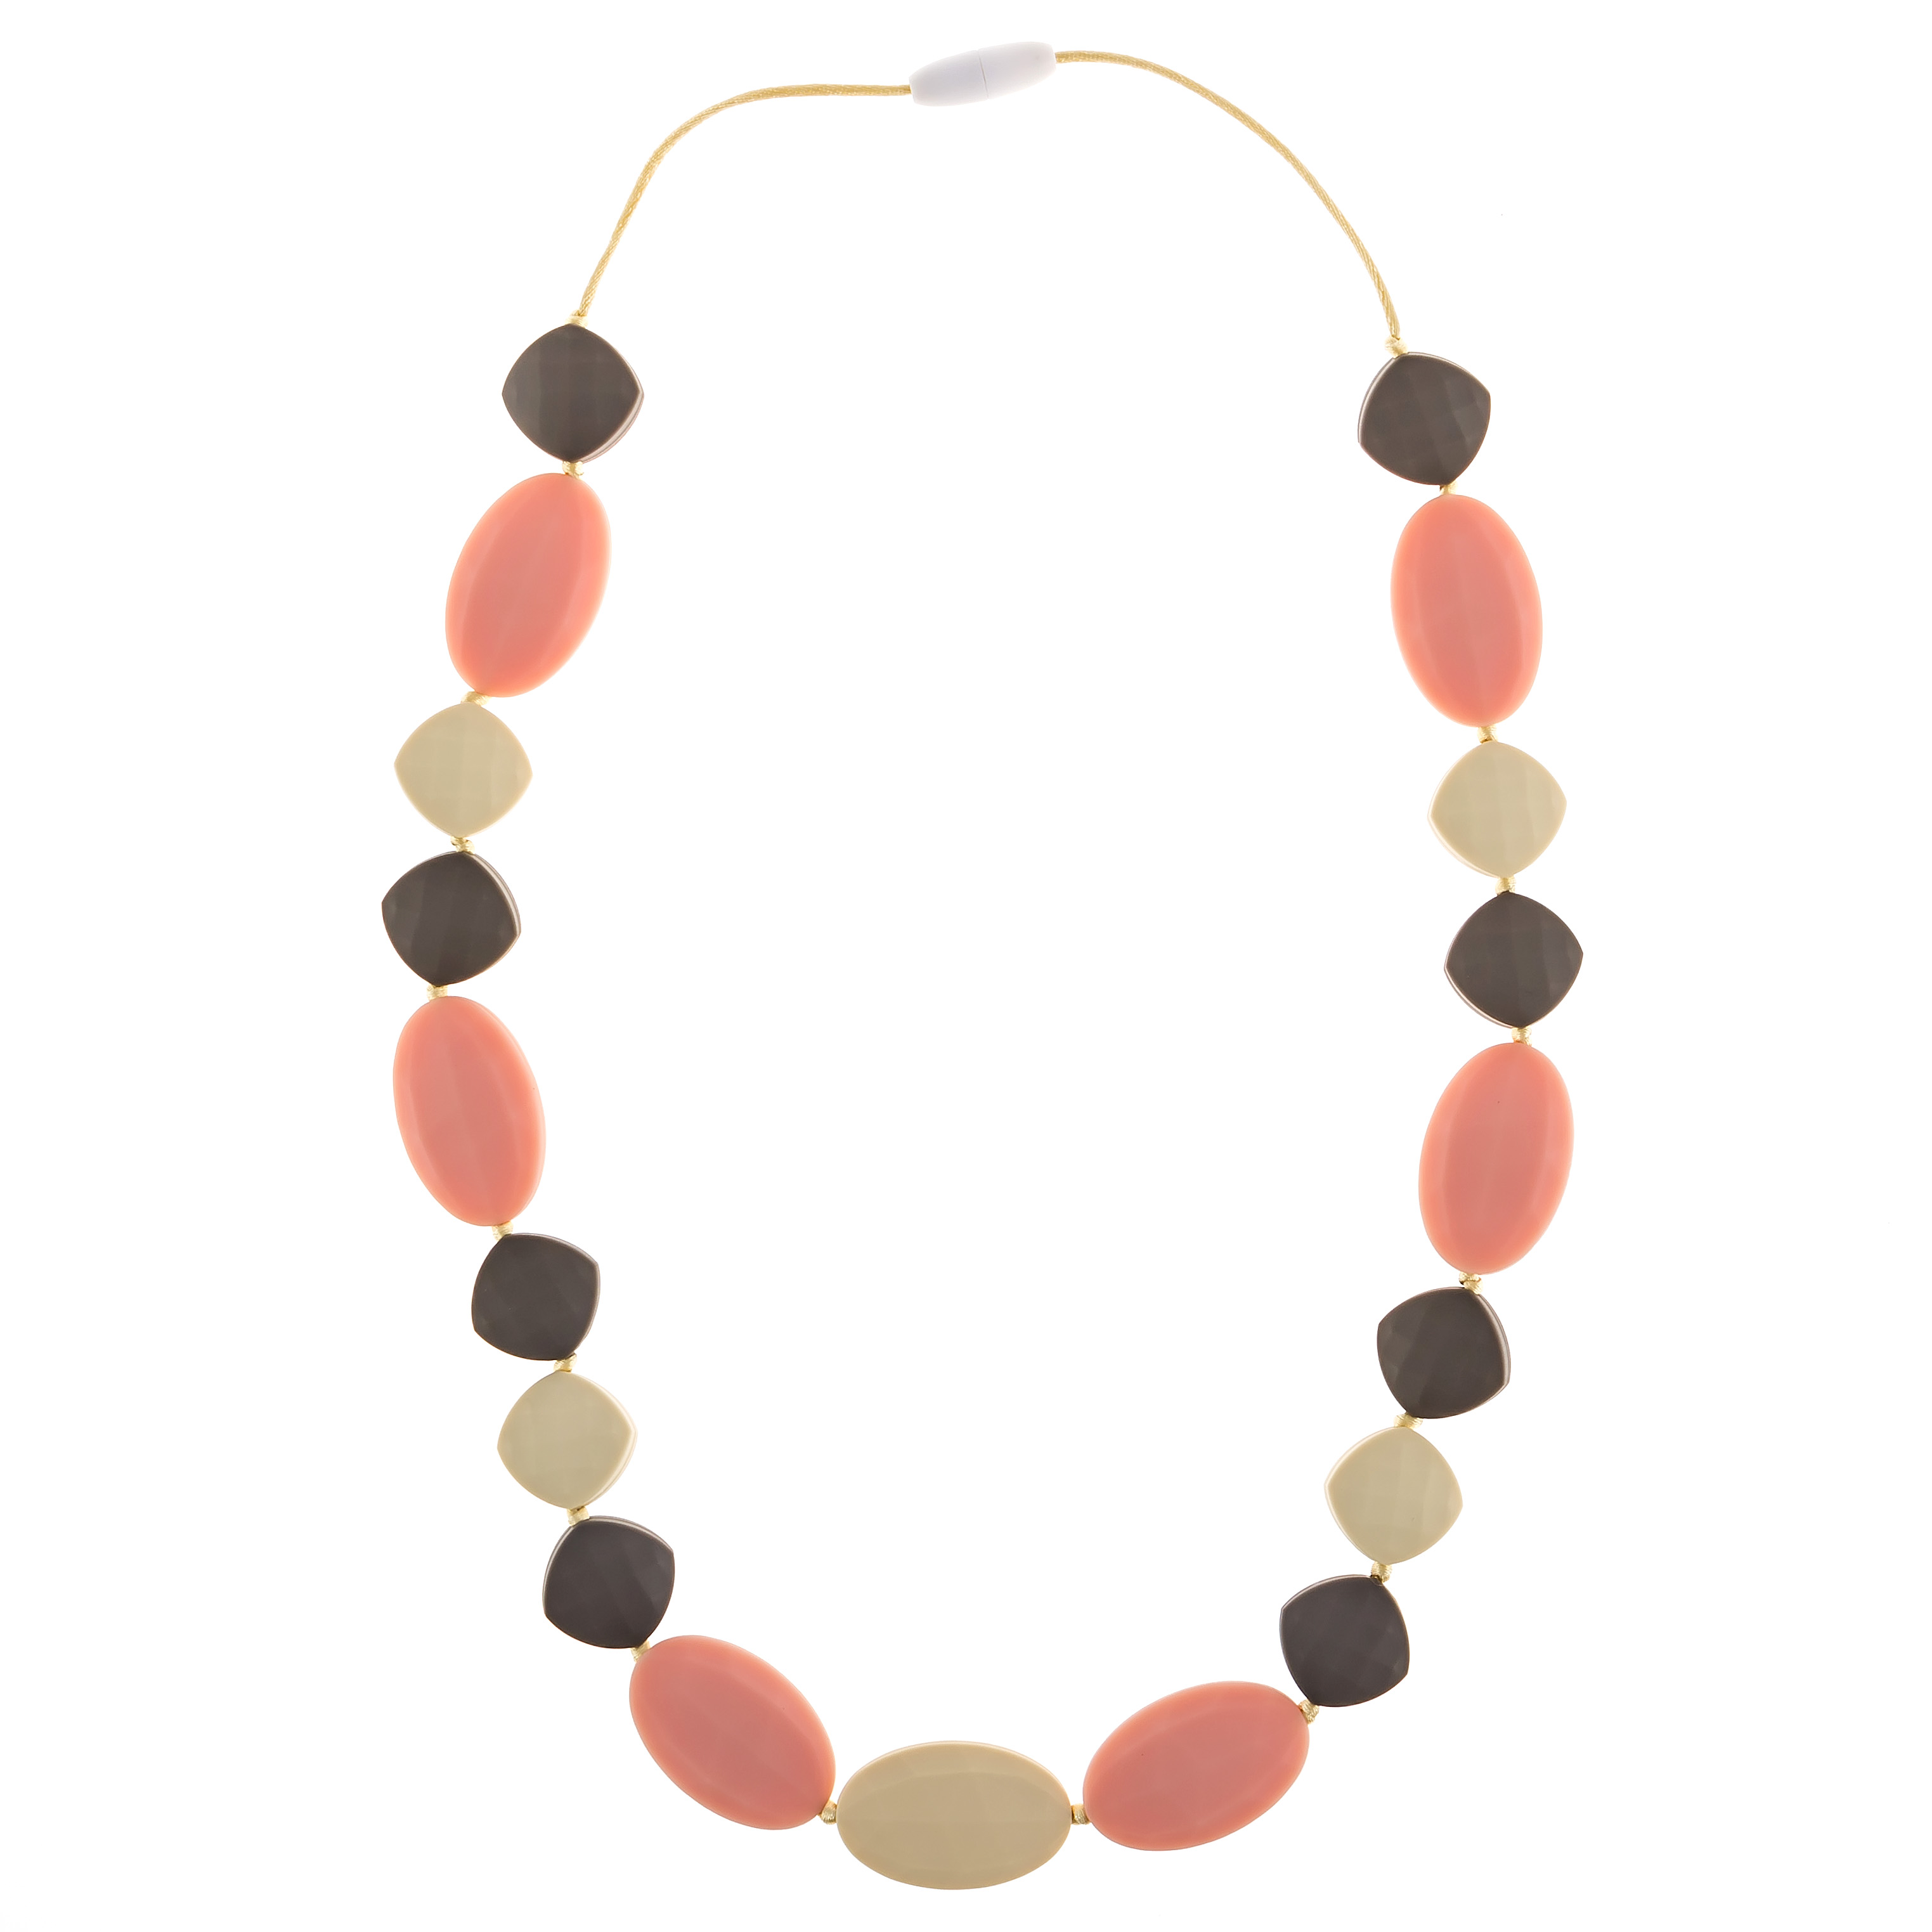 Chew-Choos Cutie Pie Silicone Teething Necklace from Baby Pinch Boutique #cutiepie